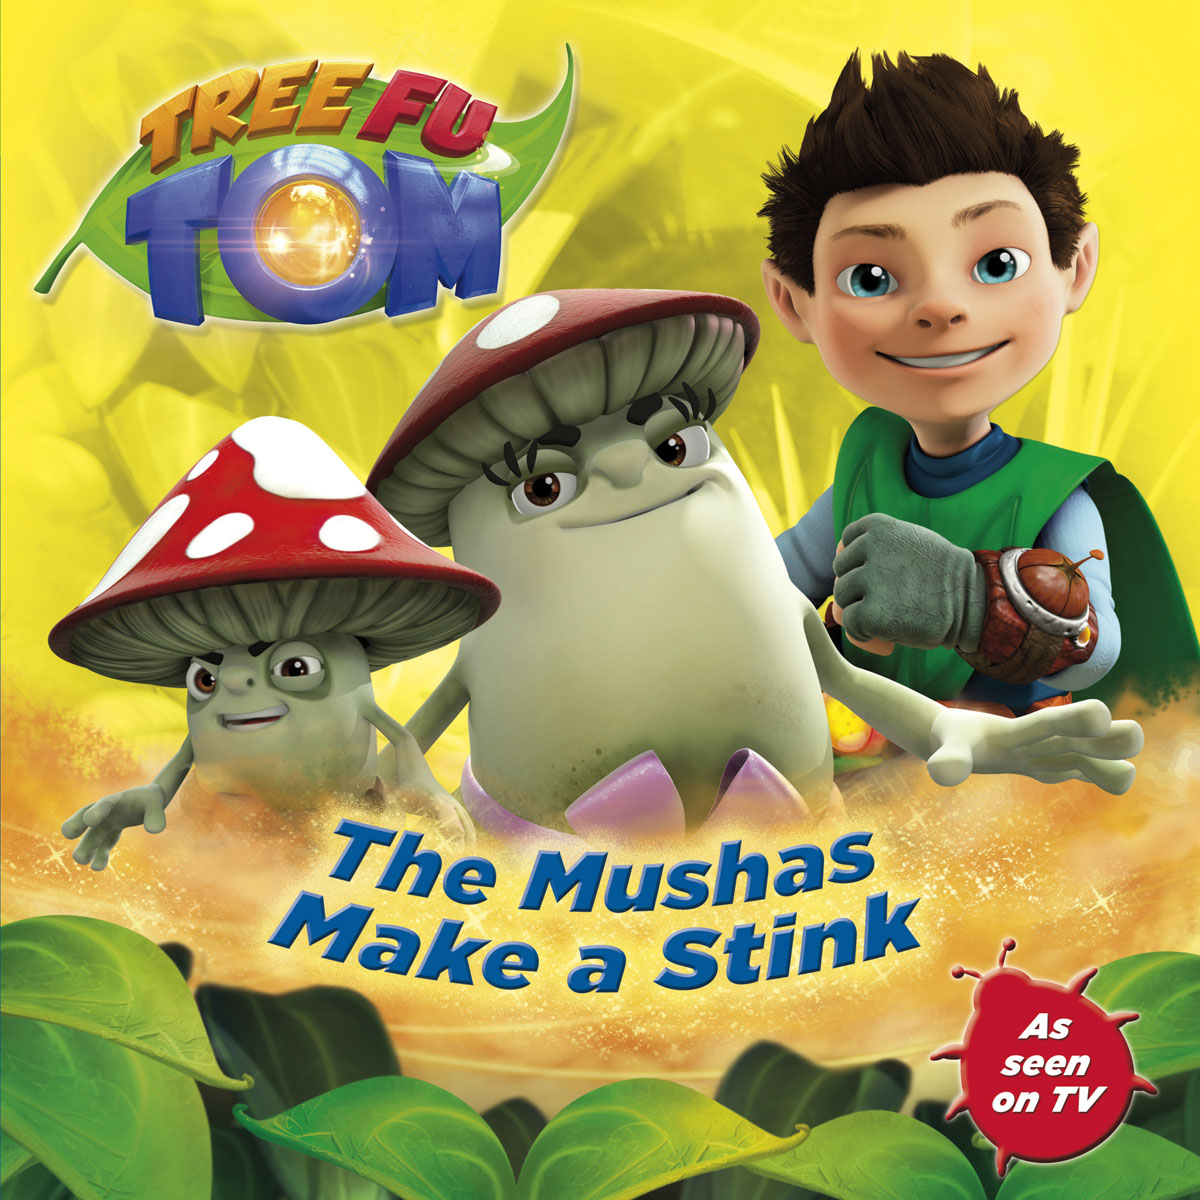 Tree Fu Tom: The Mushas Make a Stink seeing things as they are